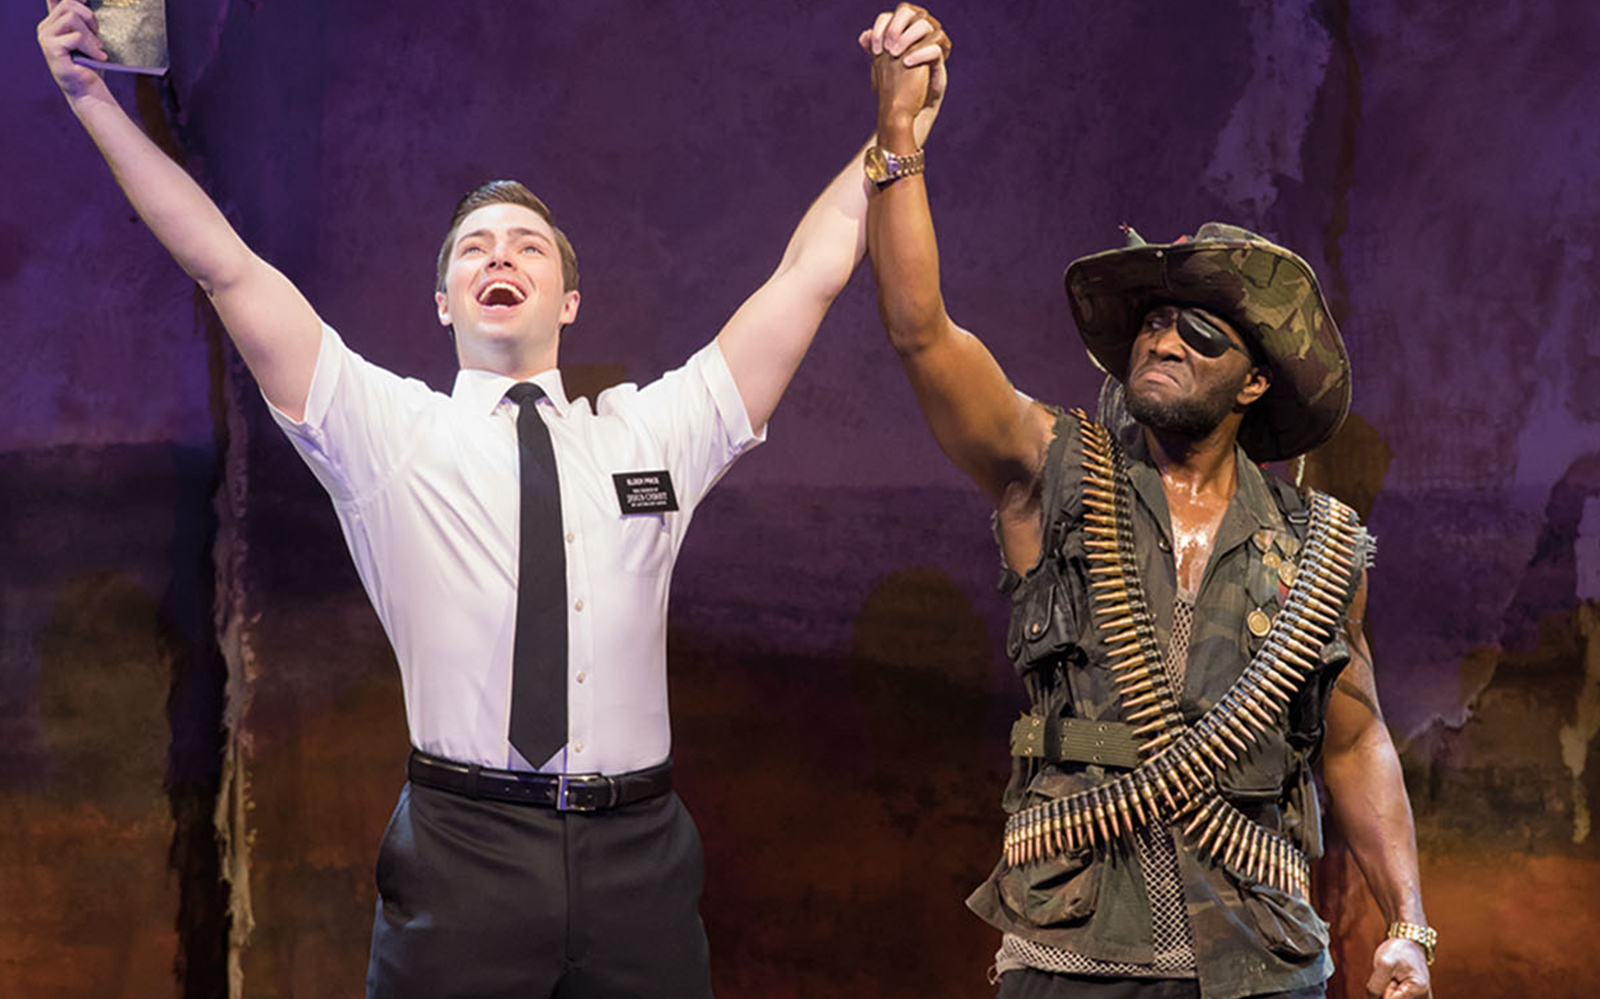 96d4c185 666f 4da7 ab70 0546ad1a74be 2843 london book of mormon 06